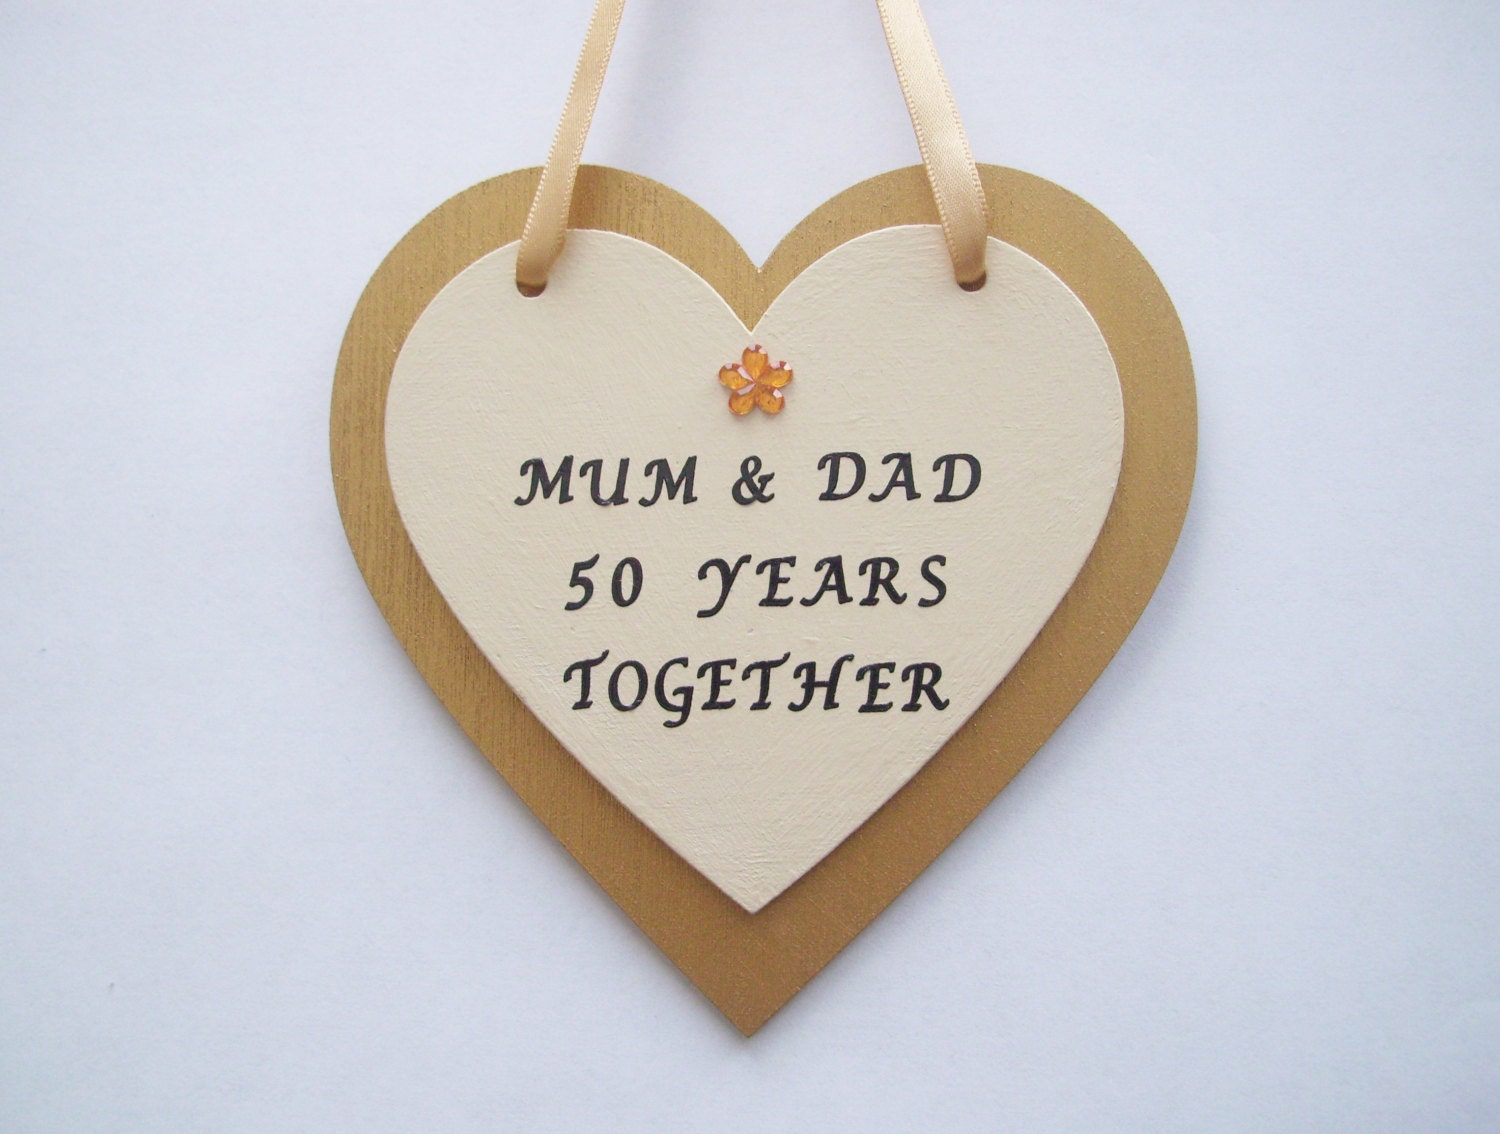 Gifts For Fiftieth Wedding Anniversary: Personalised 50th Golden Wedding Anniversary Gift. Wooden